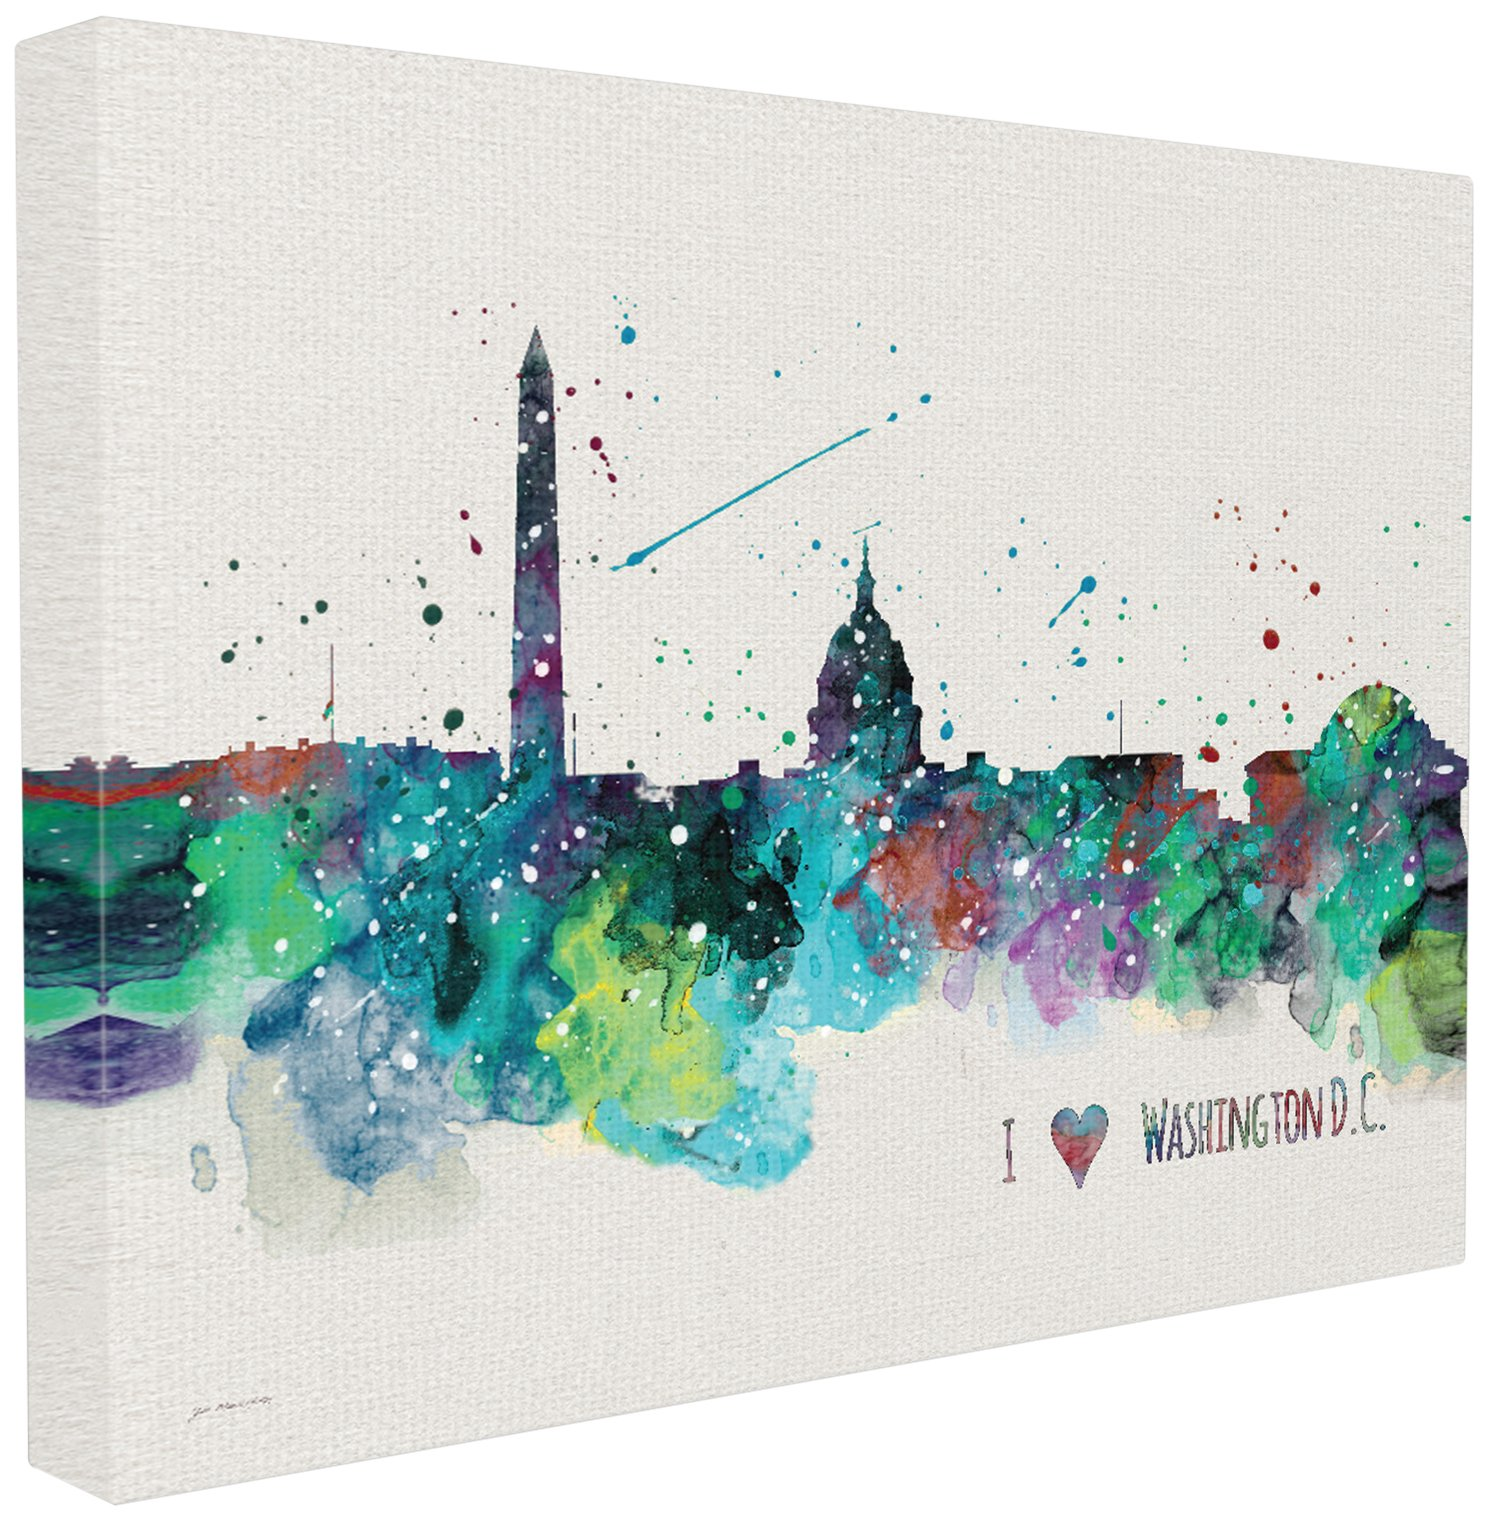 The Stupell Home Decor Collection Stupell Industries I Heart Love DC Paint Splatter Oversized Stretched Canvas Wall Art, Proudly Made in USA